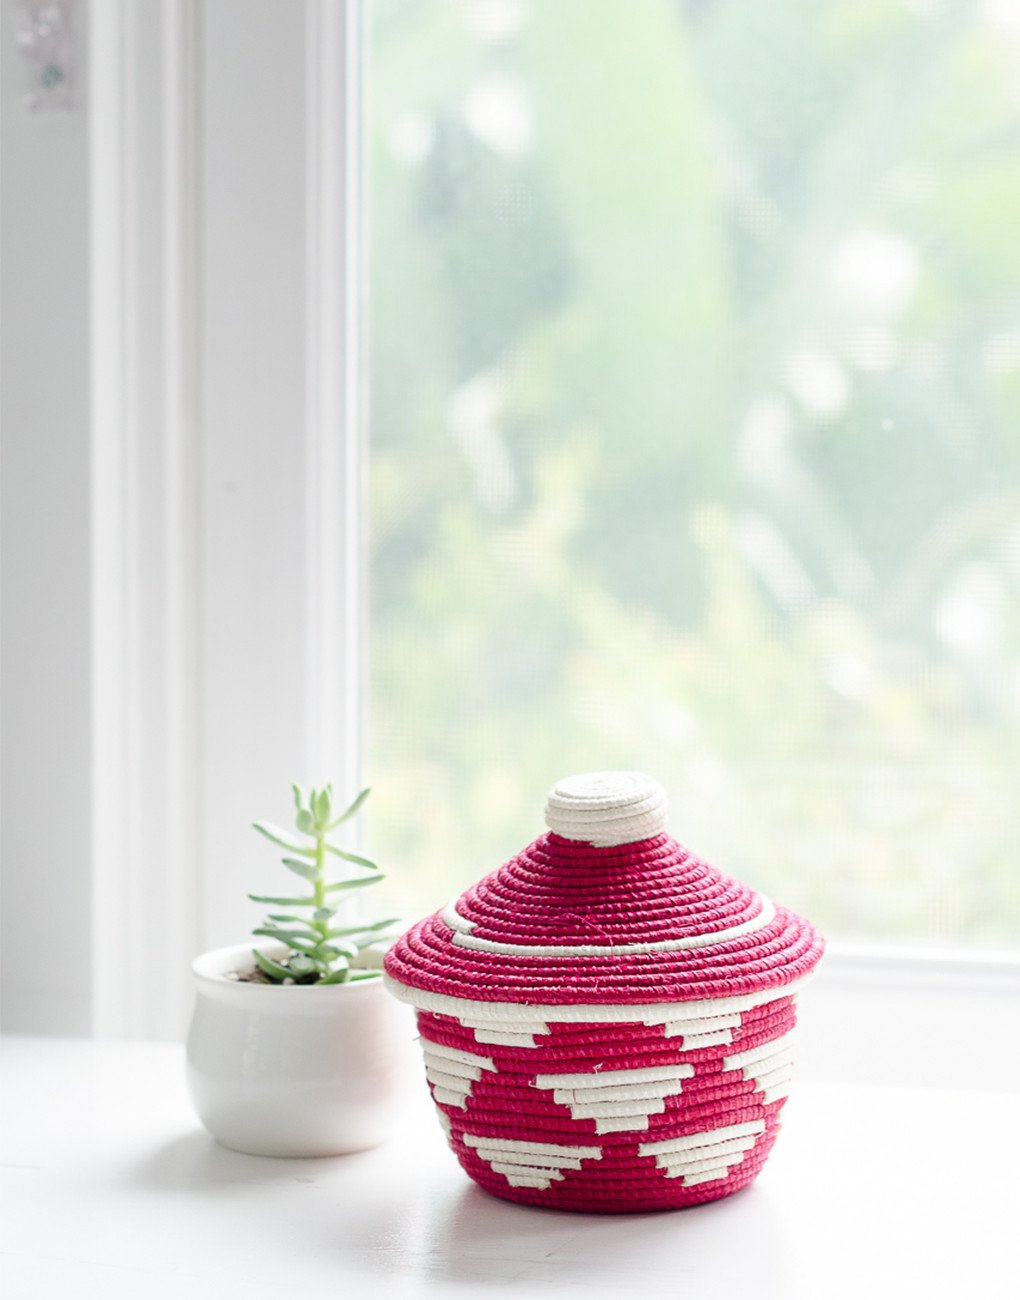 Small vibrant pink basket